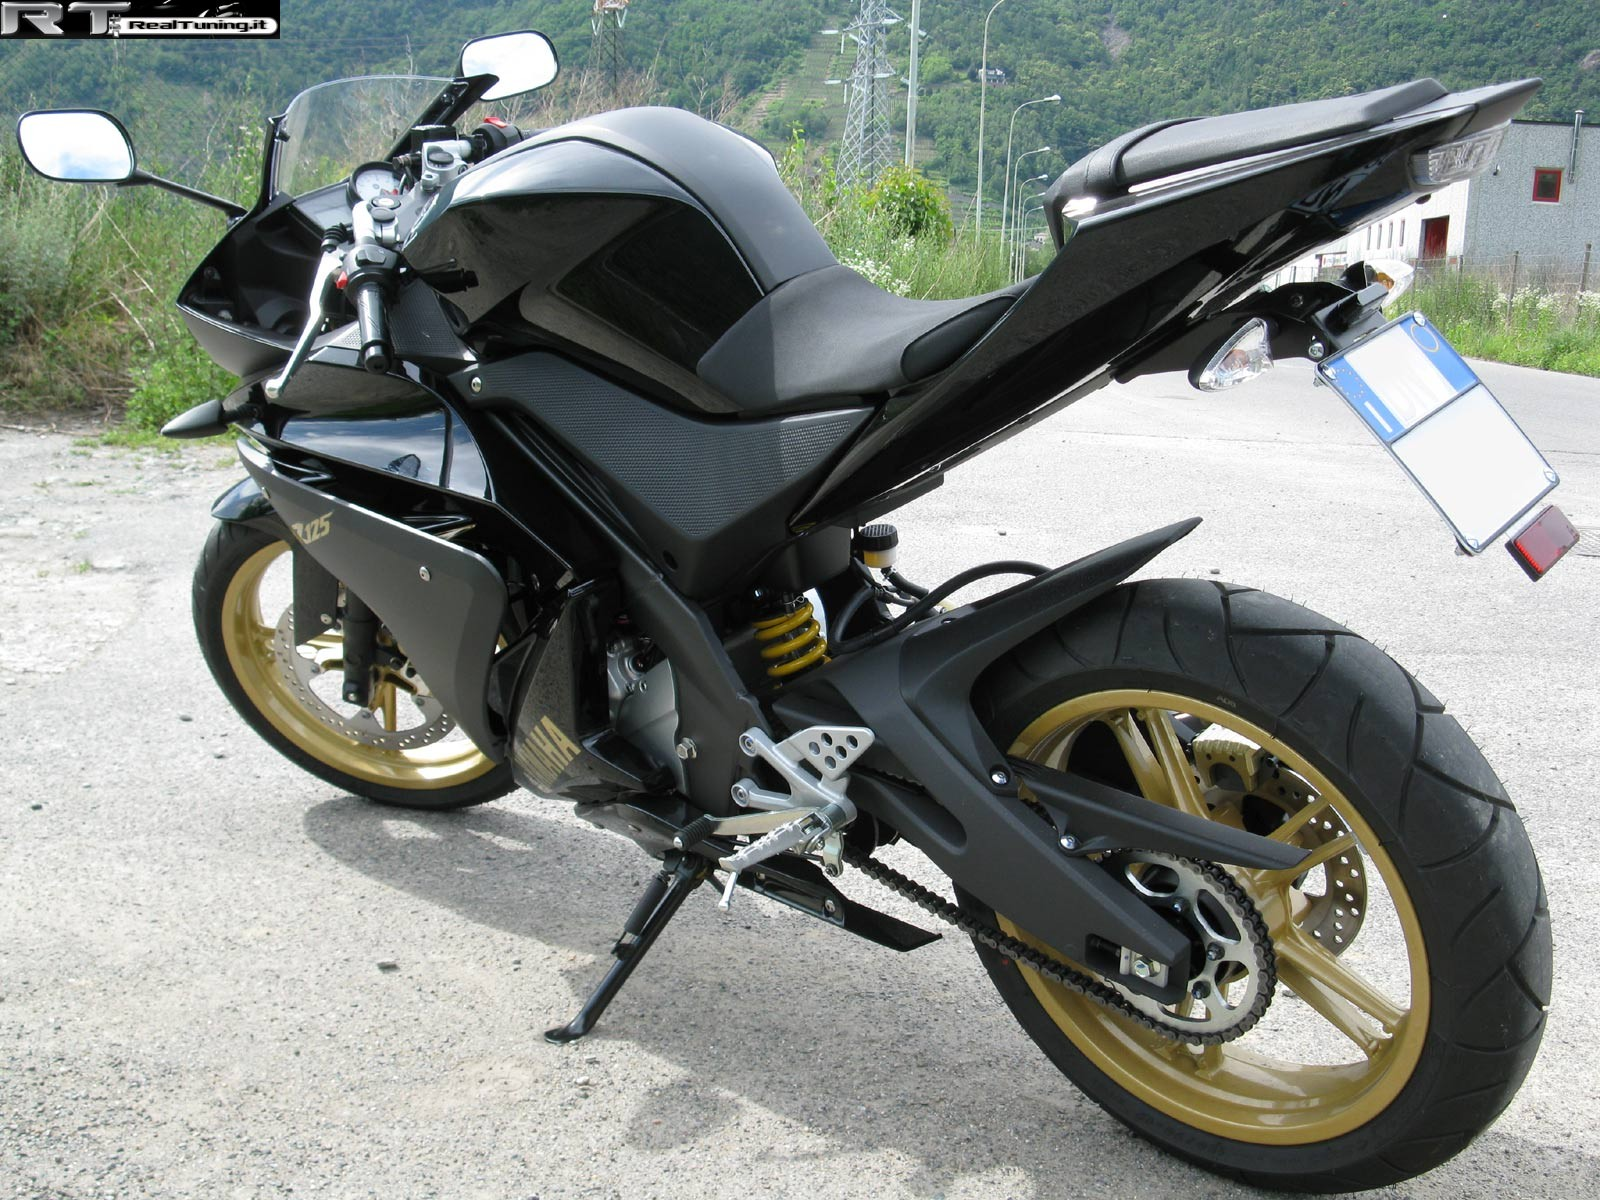 yamaha r125 di plozza tuning foto 2 realtuning it. Black Bedroom Furniture Sets. Home Design Ideas